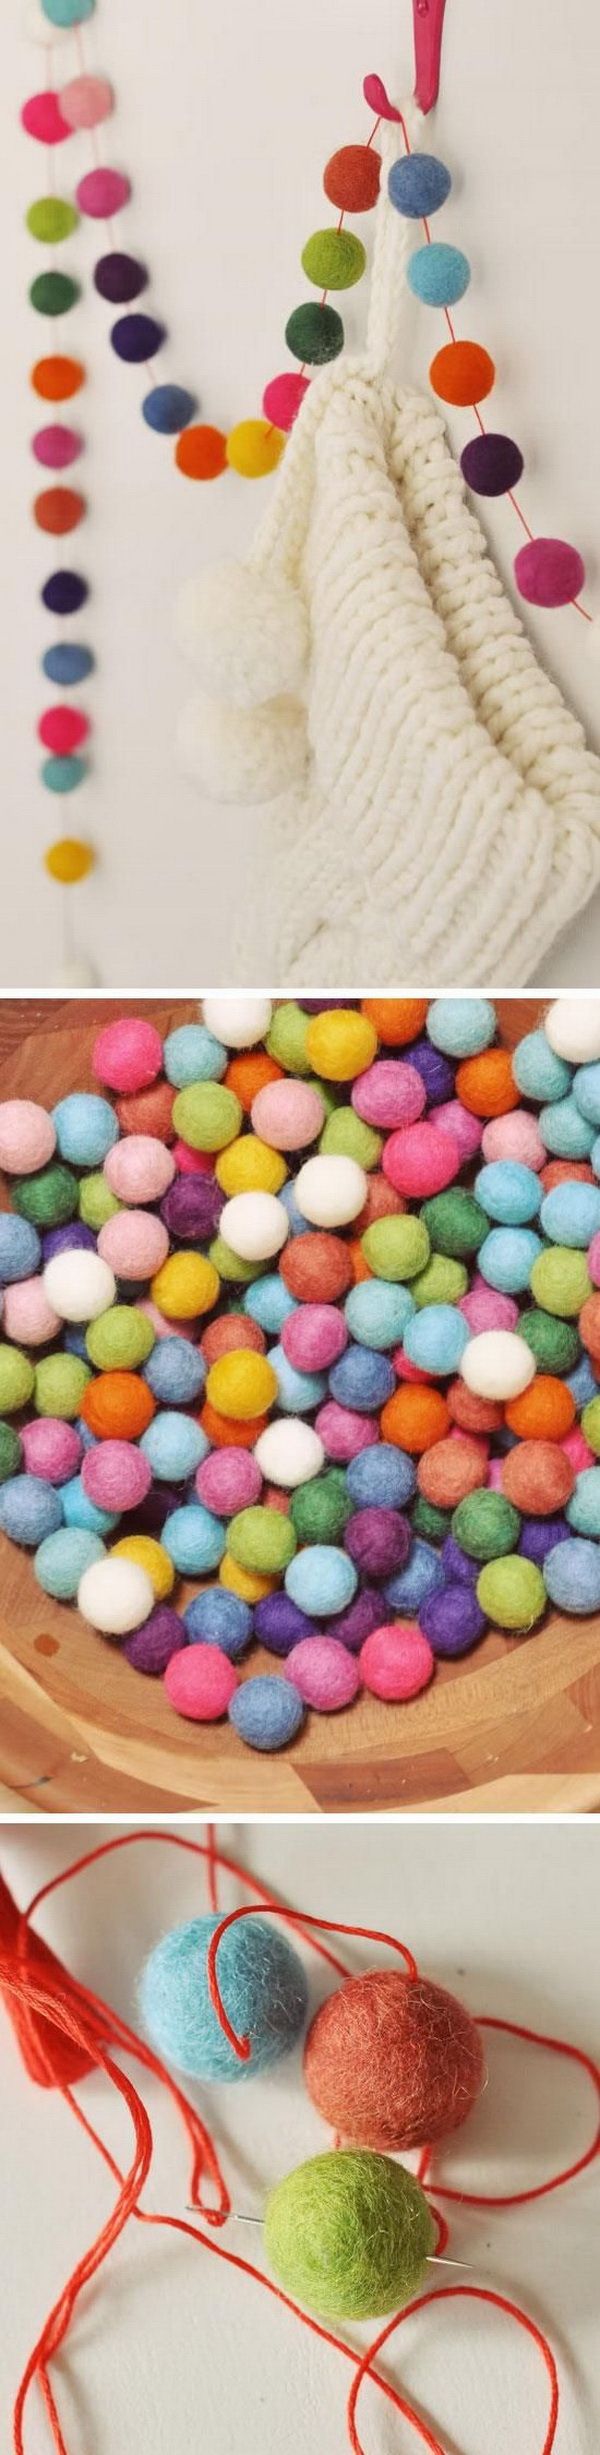 Felt Ball Garland for Christmas. DIY colorful garland made with little felt balls! Great for teen girls' bedroom decoration for ths holiday!Make your home look festive for less this holiday season with easy DIY dollar store Christmas decor ideas. Wreaths, candles, centerpieces, wall art, ornaments, vases, gifts and more!